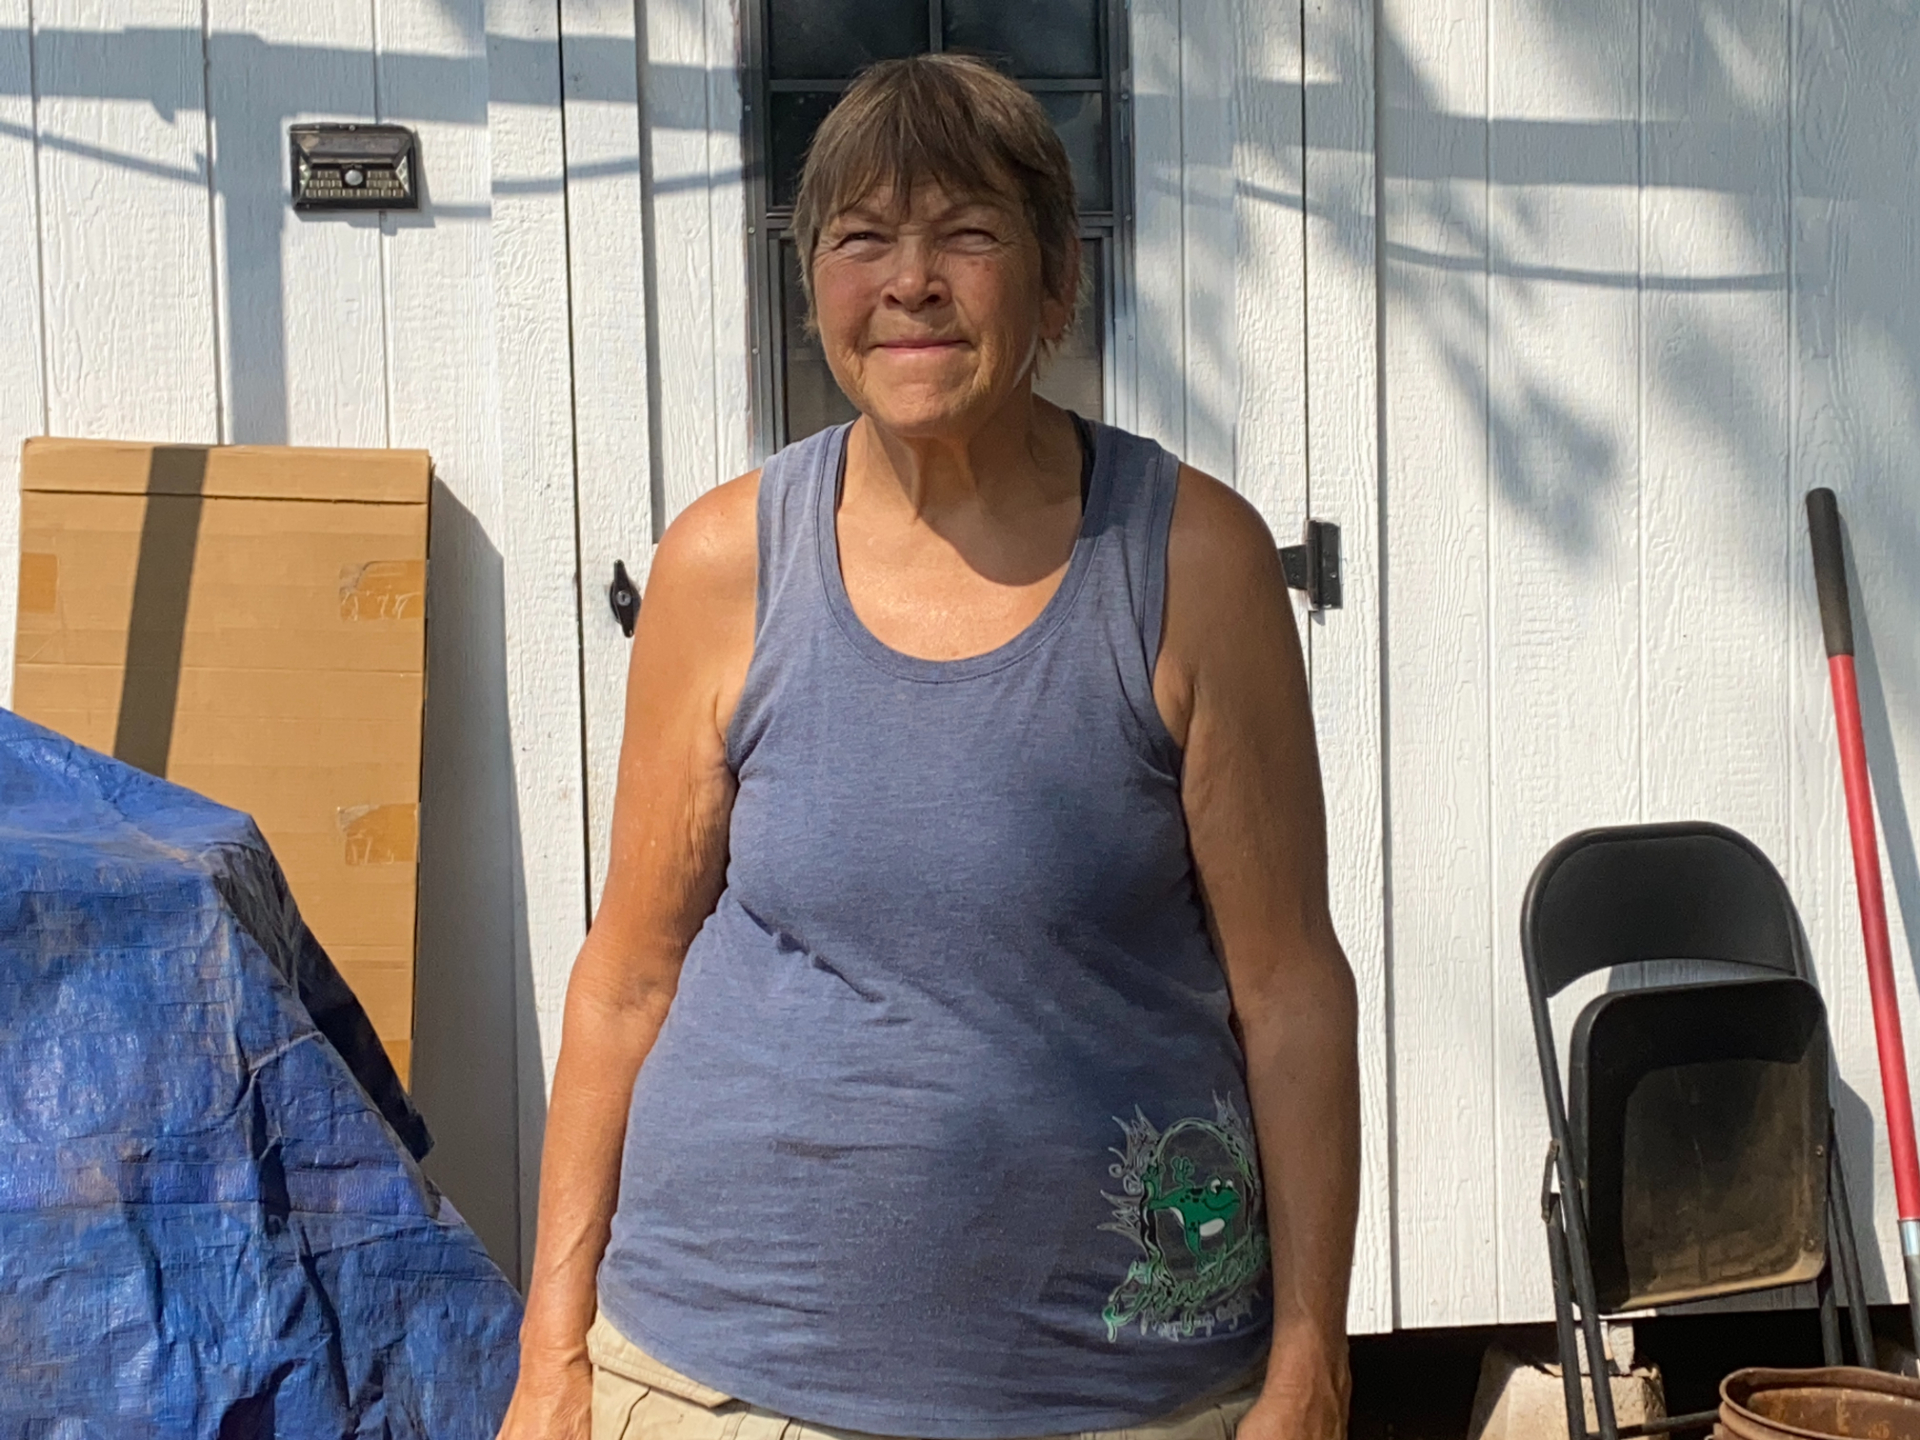 A woman in a tank top stands in front of a storage shed, with a slight smile and eyes closed in the bright sun.